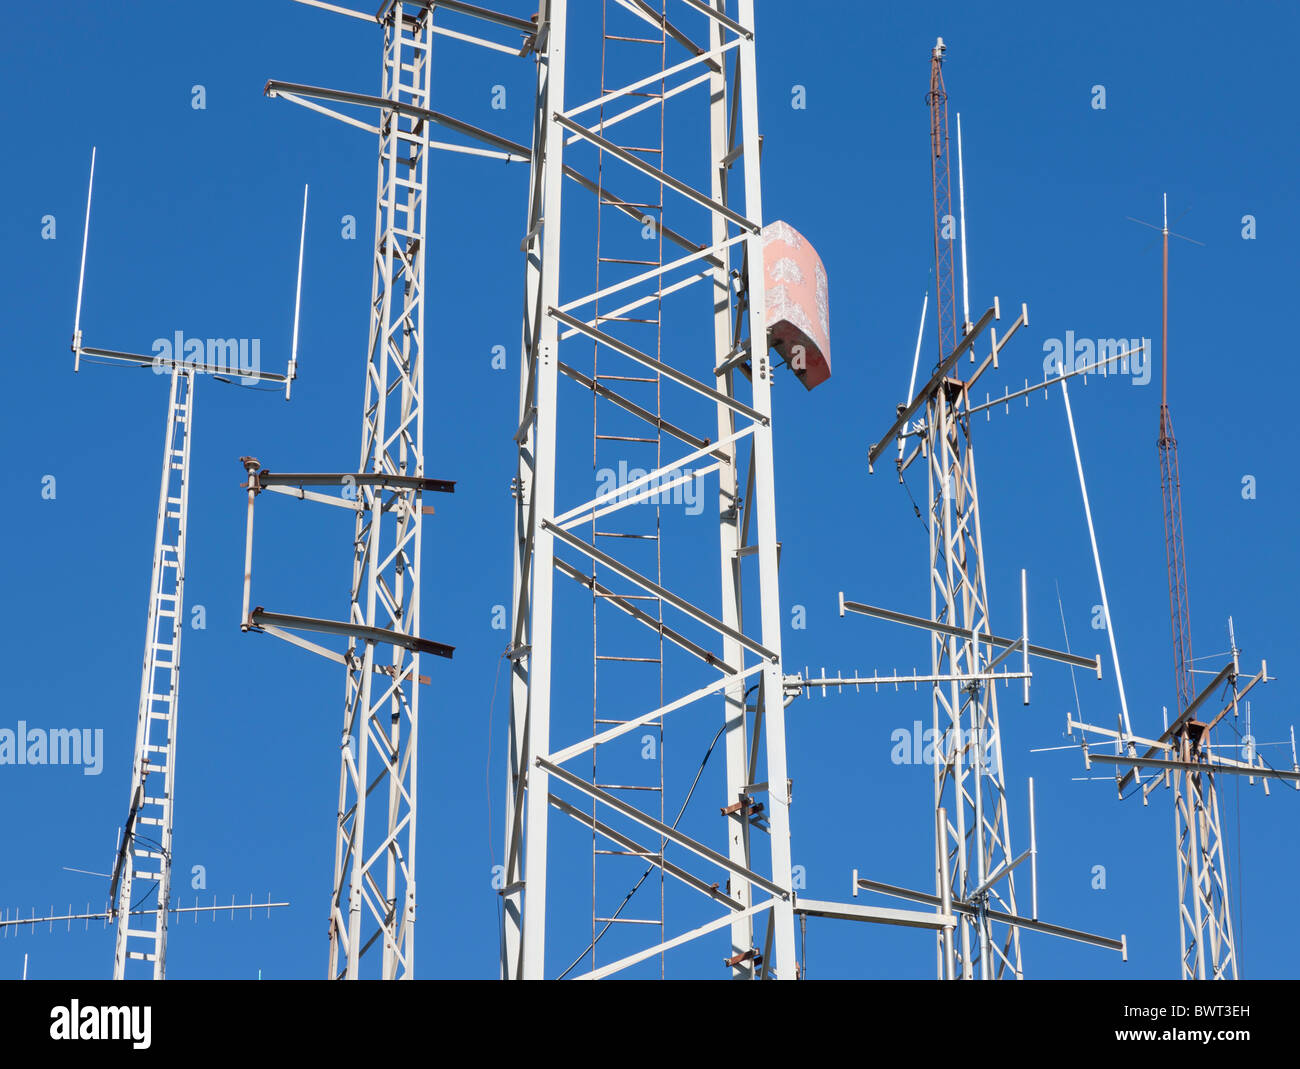 Communication masts and aerials near Mijas, Costa del Sol, Malaga Province, Spain. - Stock Image